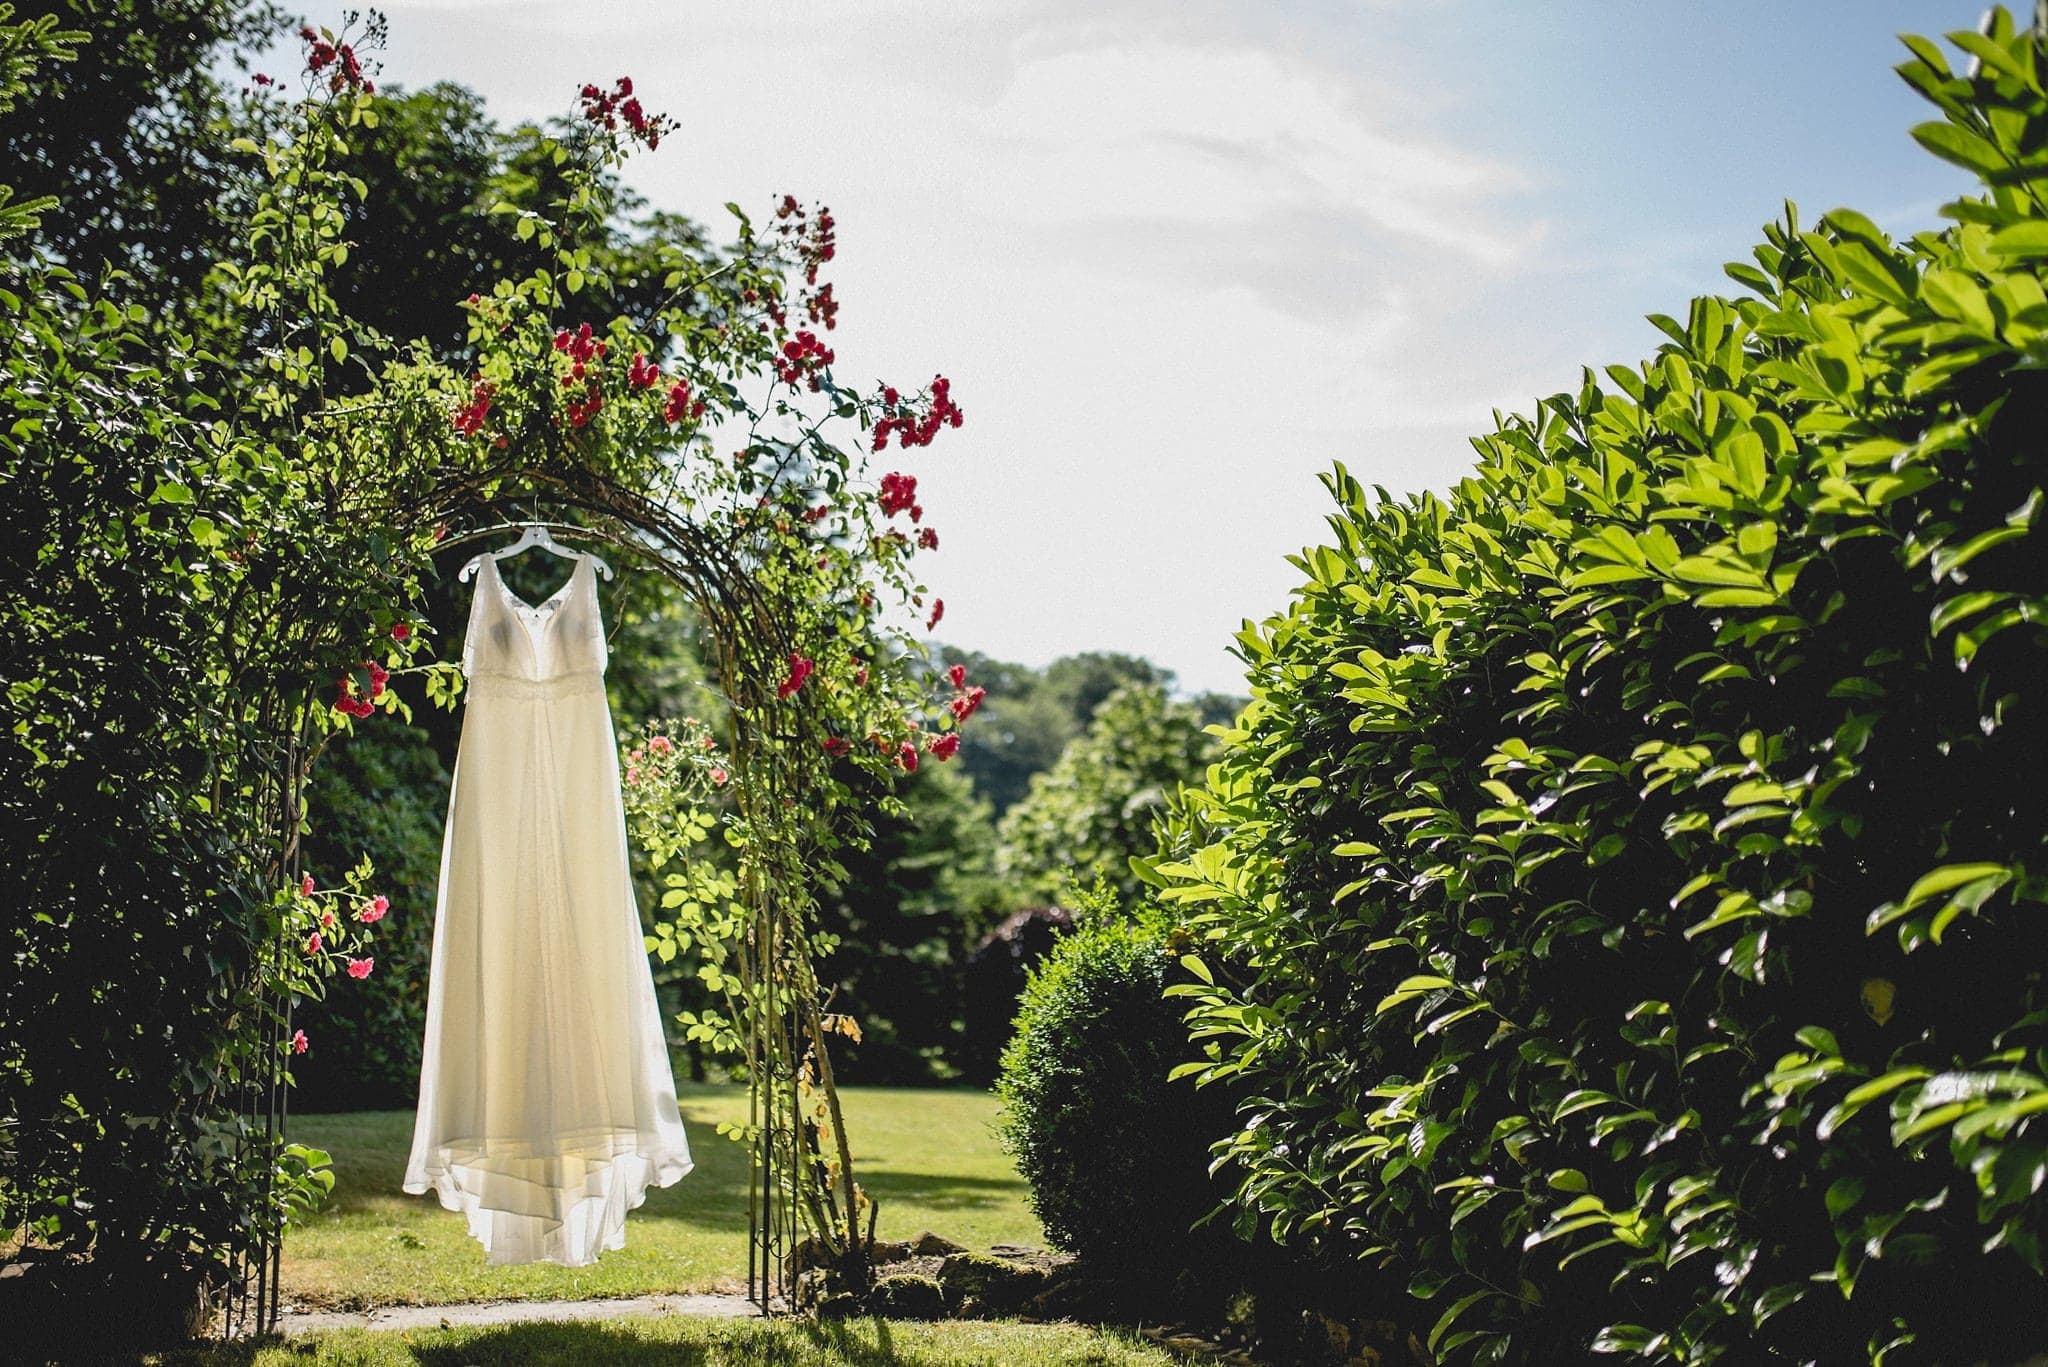 Sunlit wedding dress hanging in a rose arch